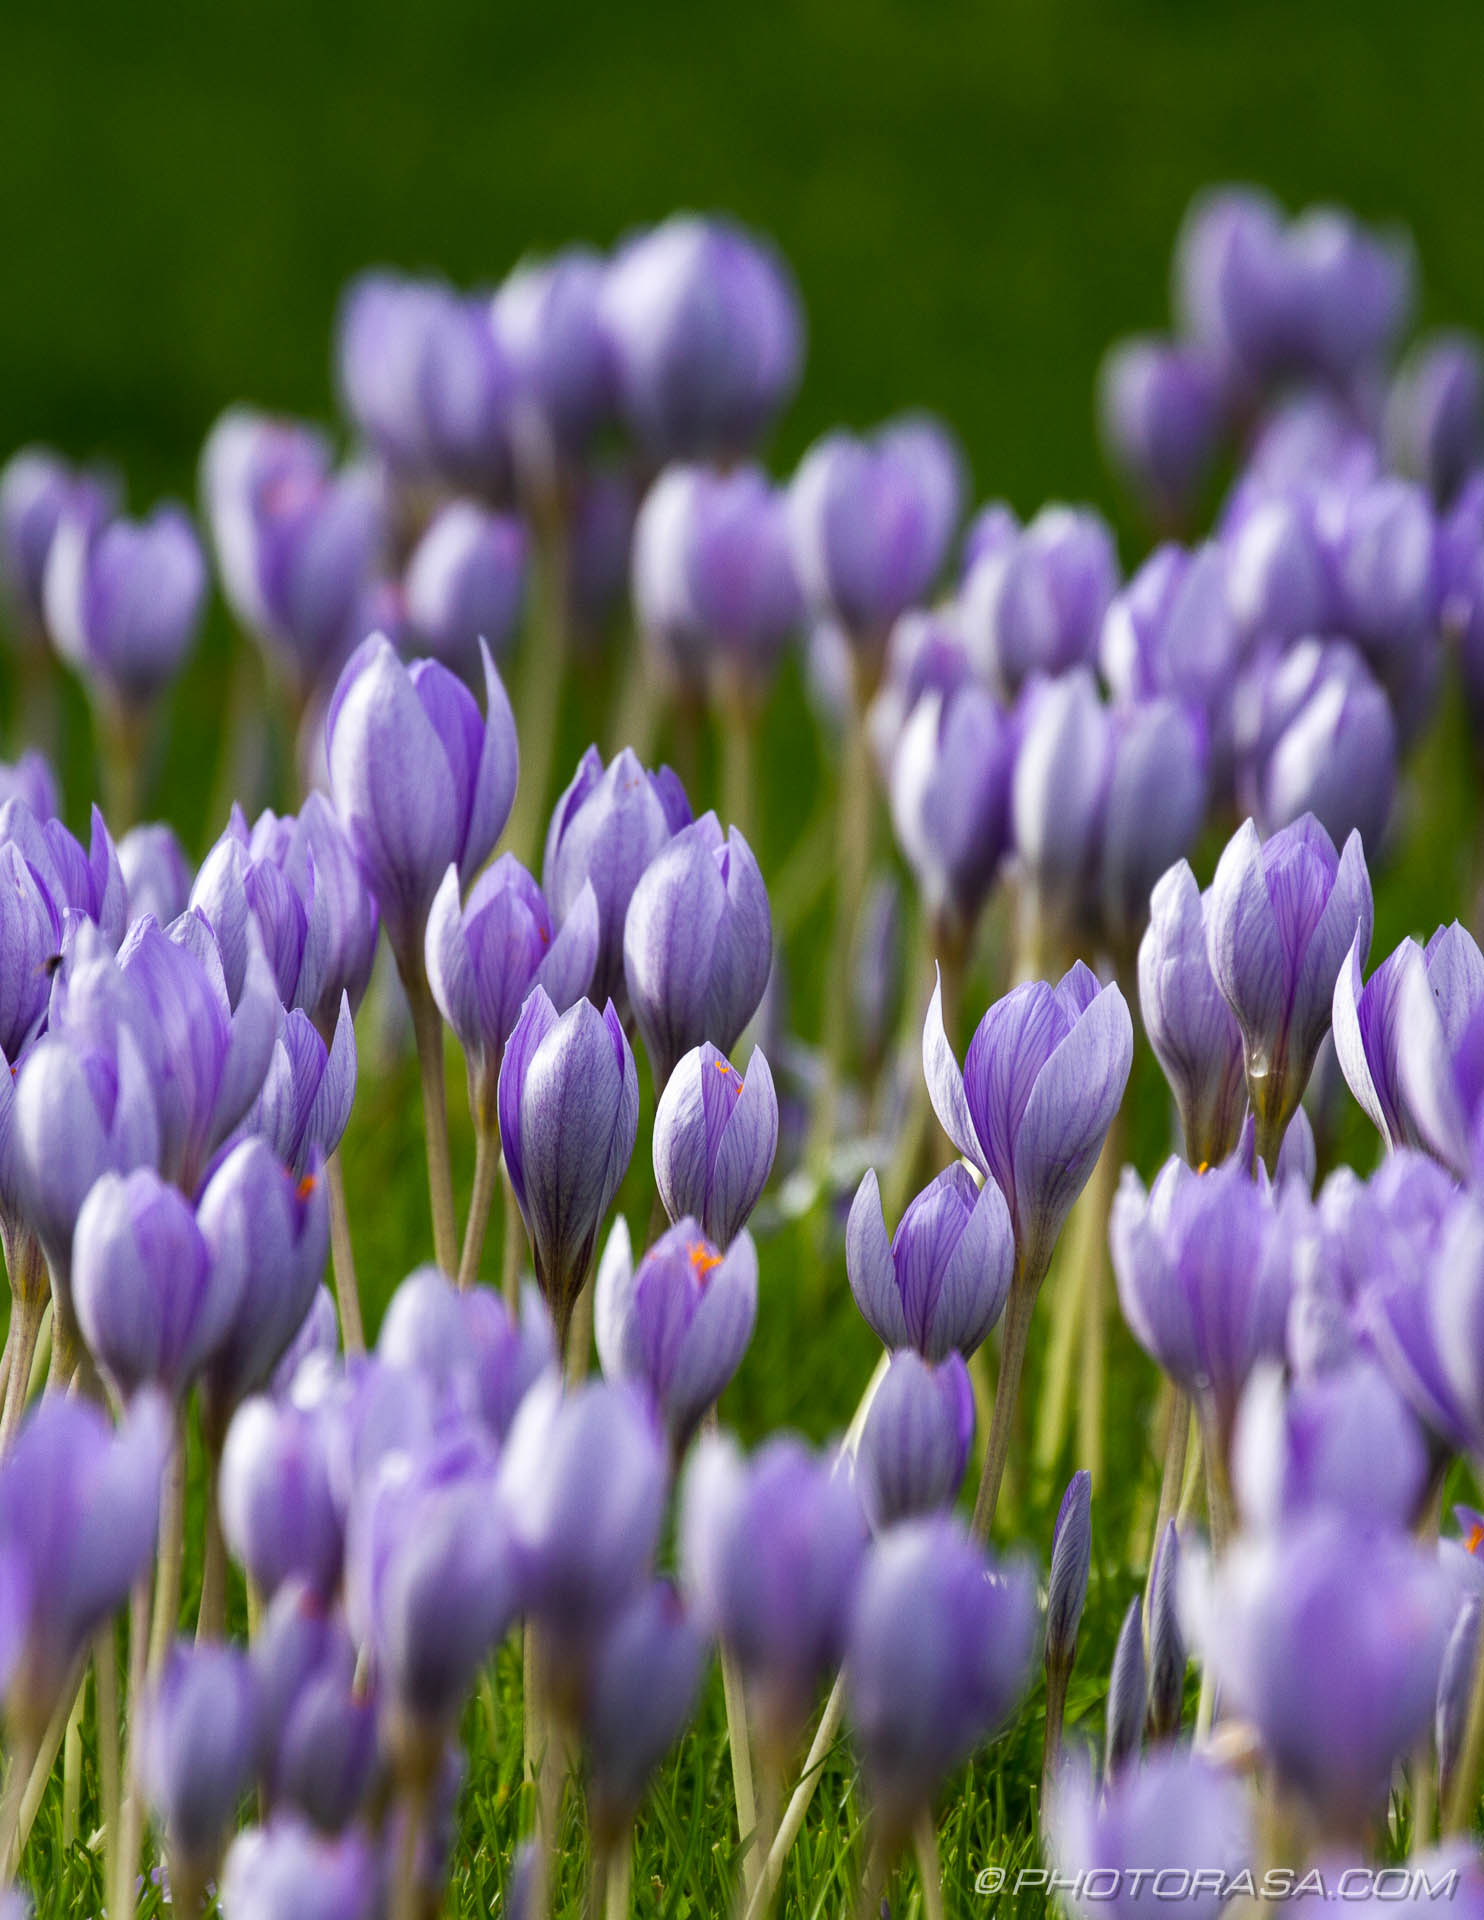 http://photorasa.com/purple-autumn-crocuses/autumn-crocuses/